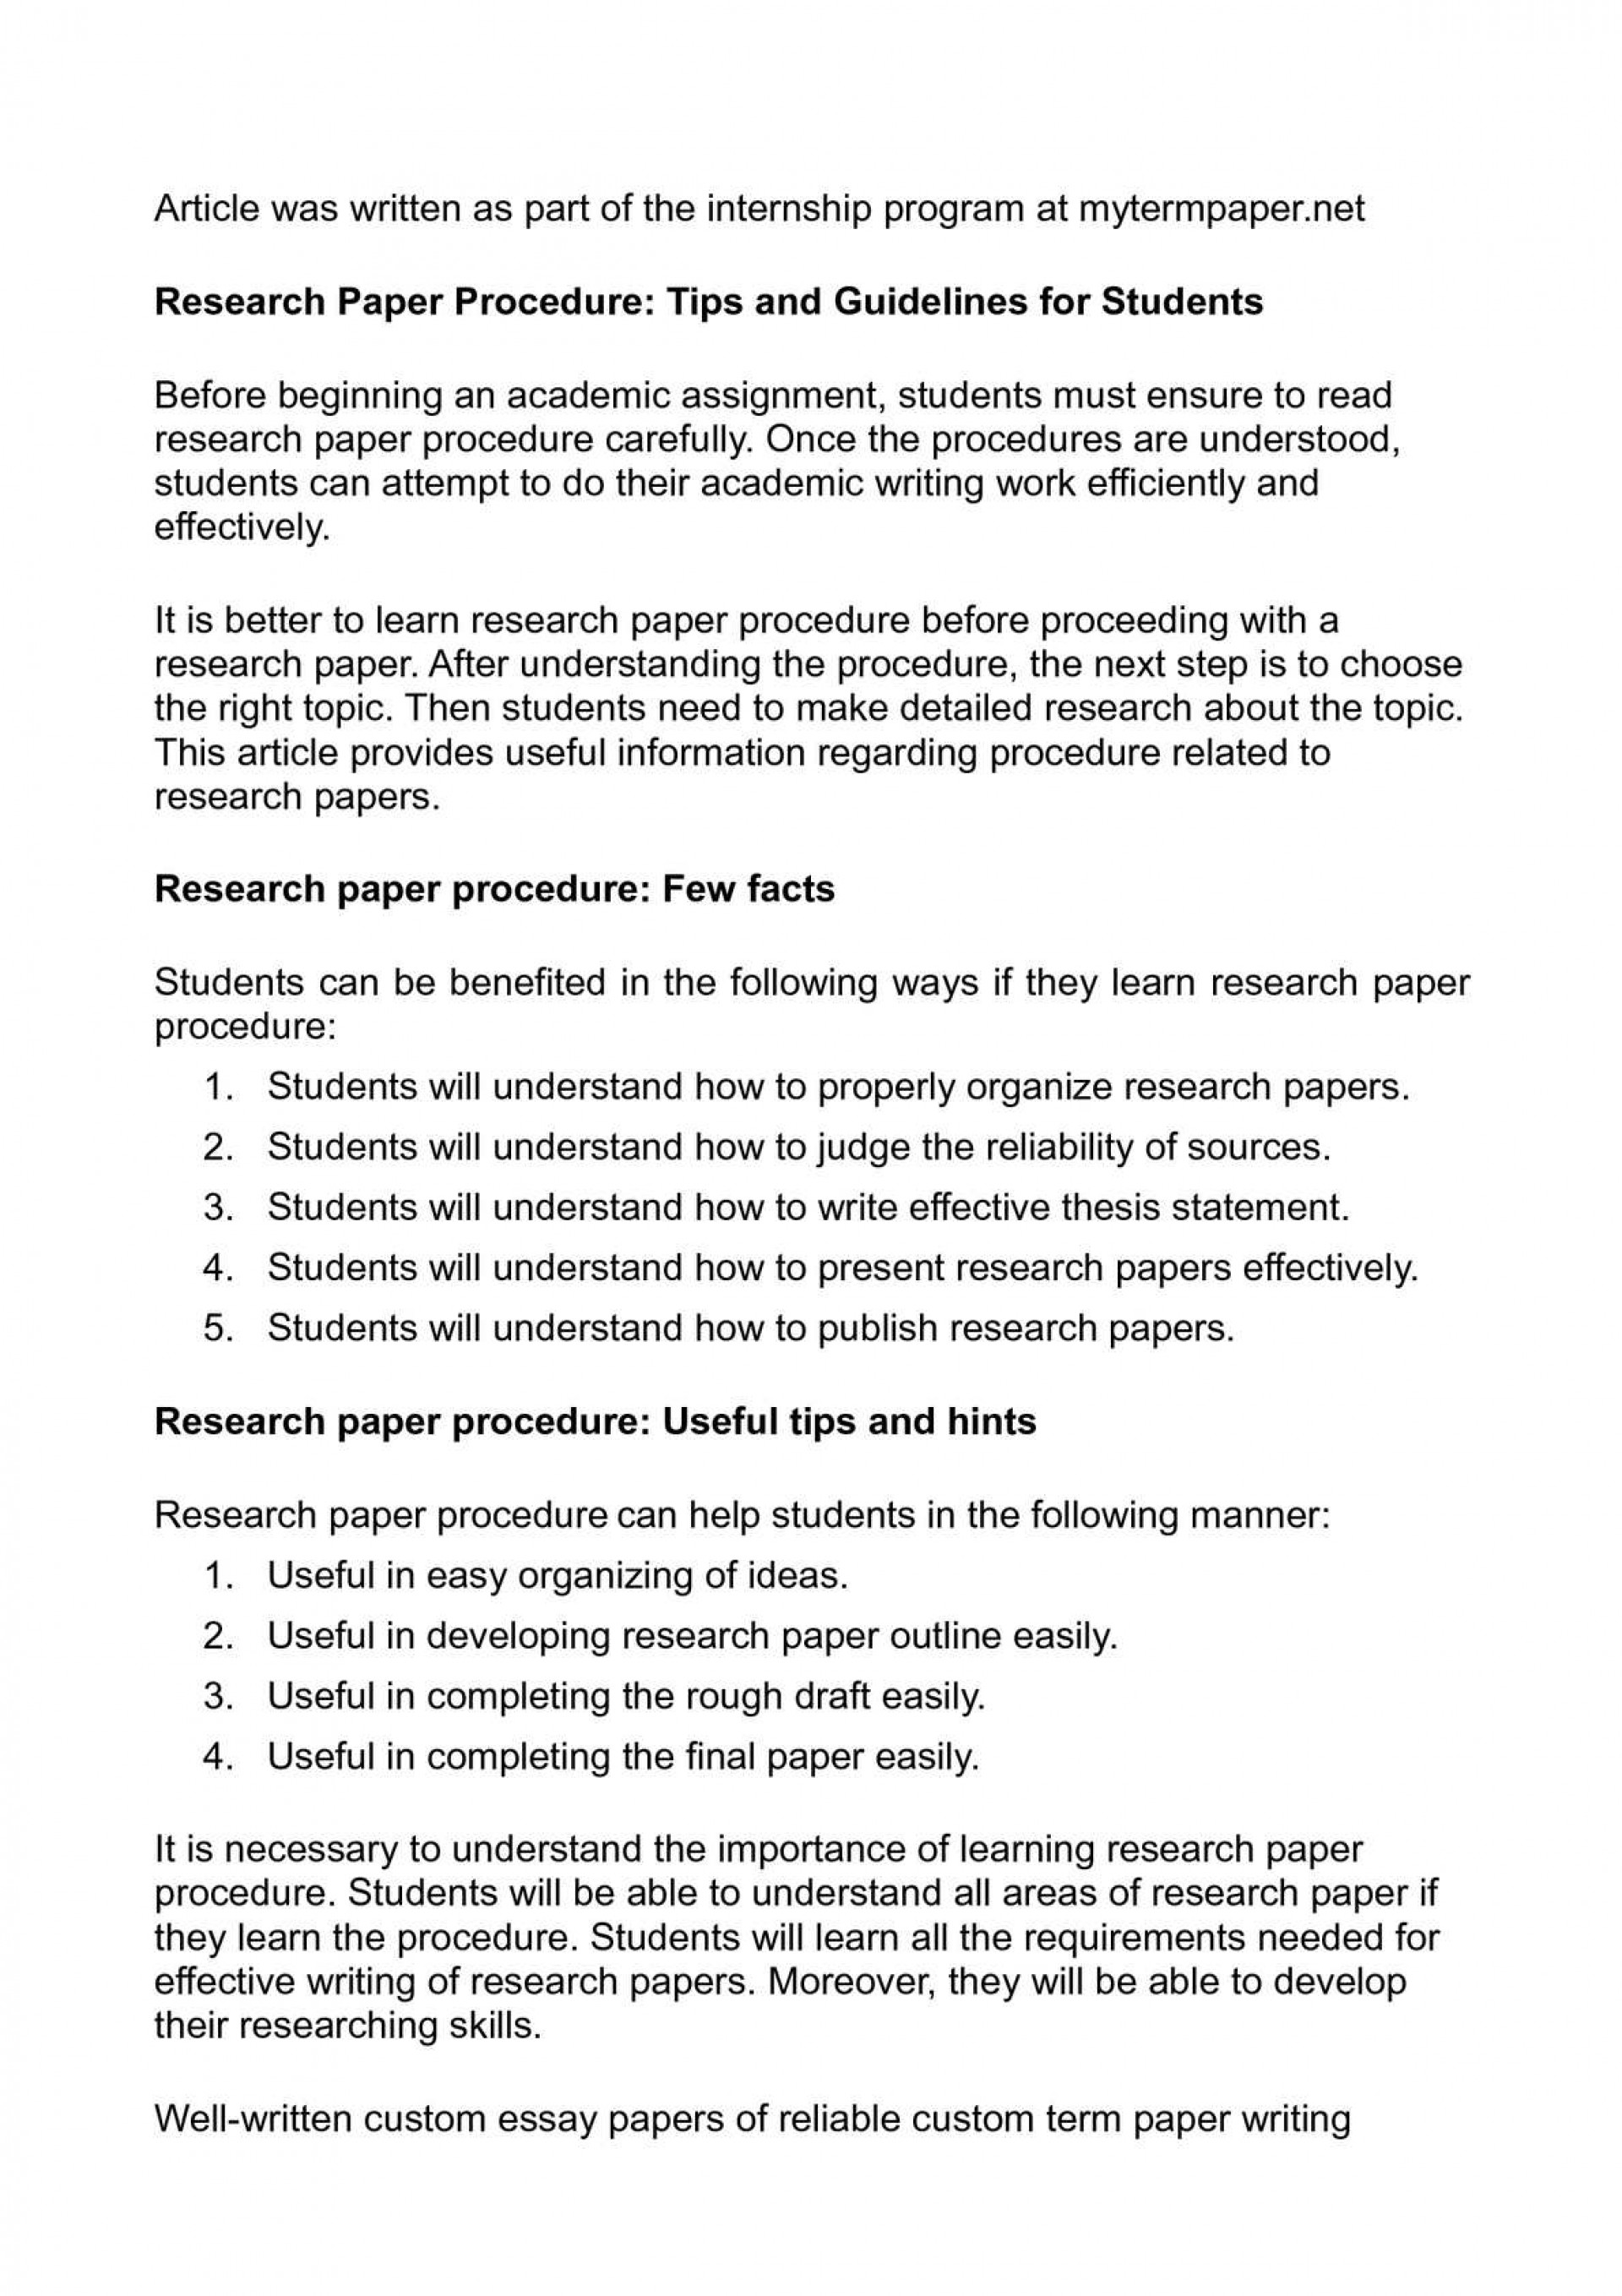 018 How To Do Research Paper Marvelous Review Write A Outline Owl Purdue Citing Sources 1920